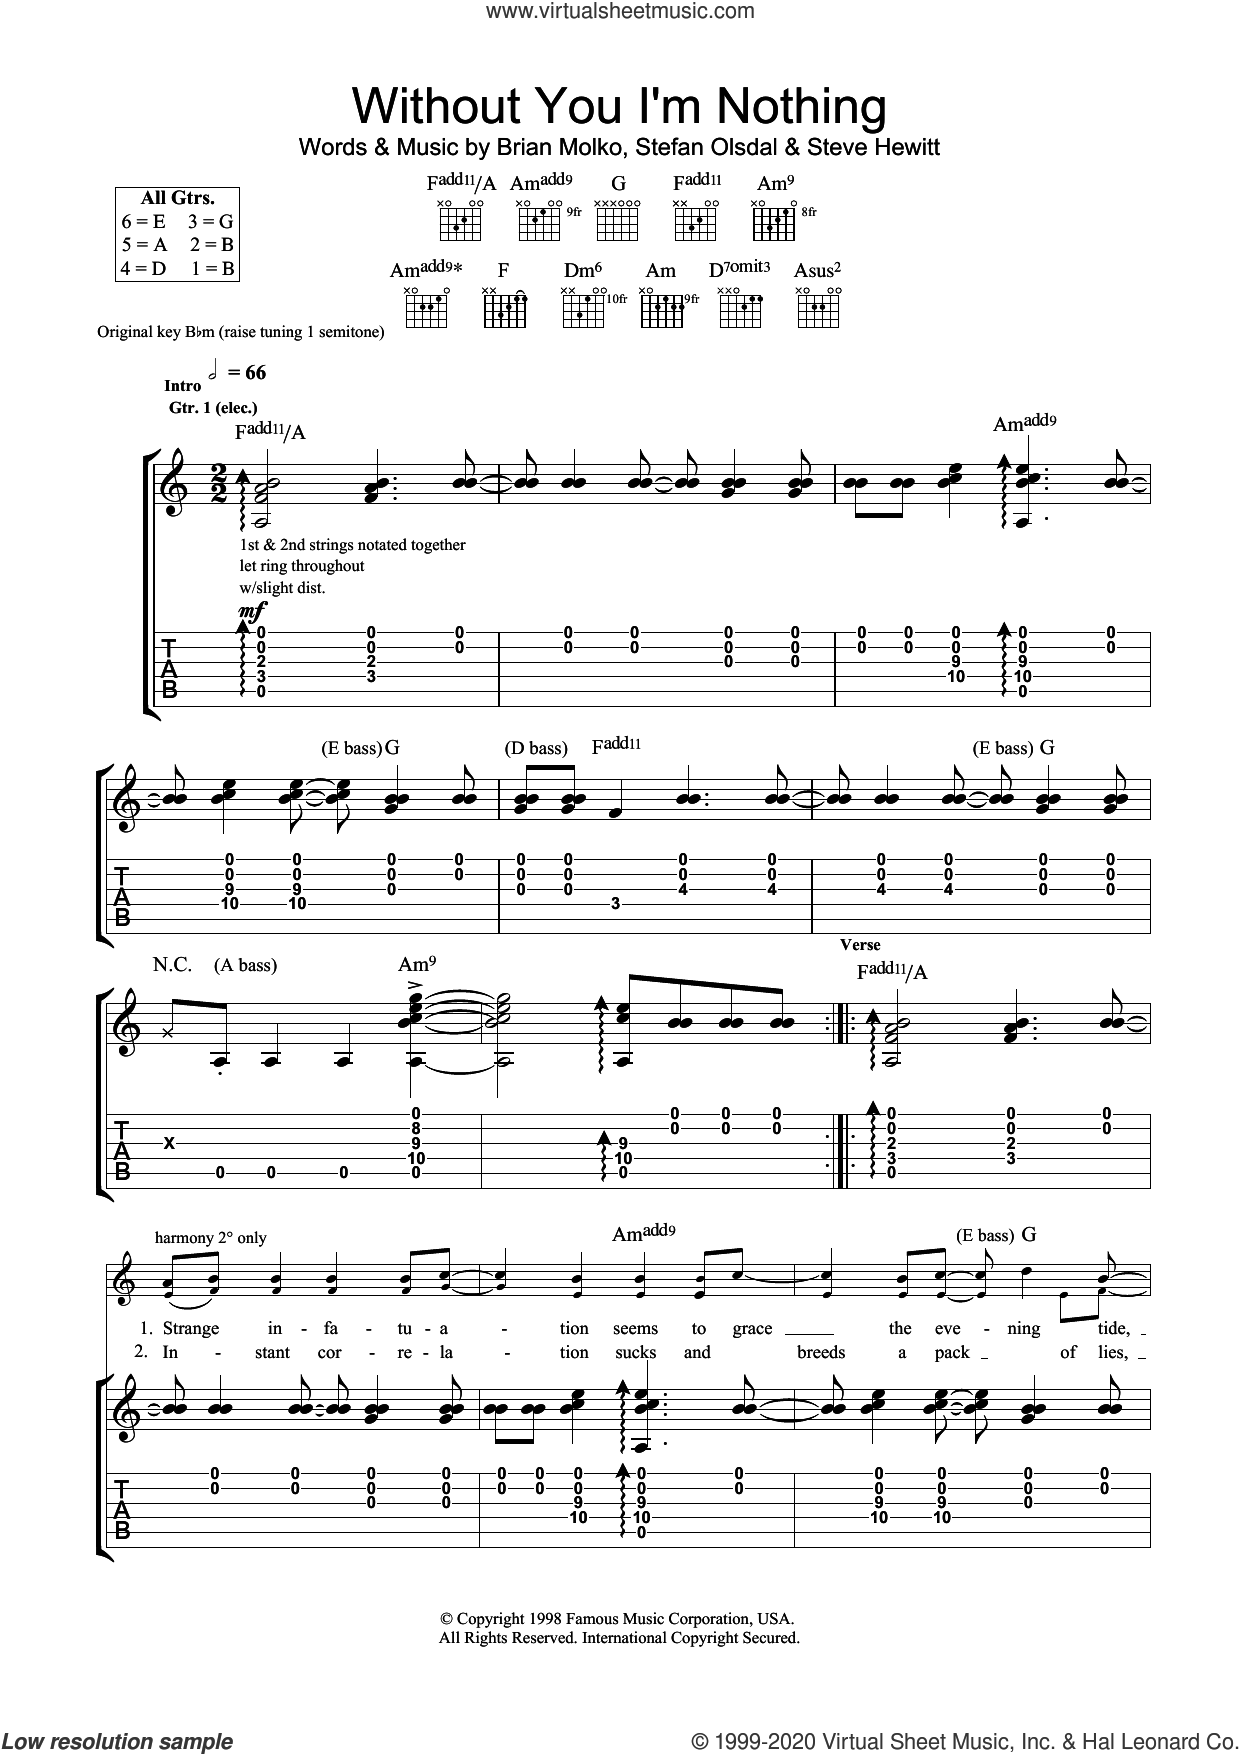 Without You I'm Nothing sheet music for guitar (tablature) by Placebo, Brian Molko, Stefan Olsdal and Steve Hewitt, intermediate skill level